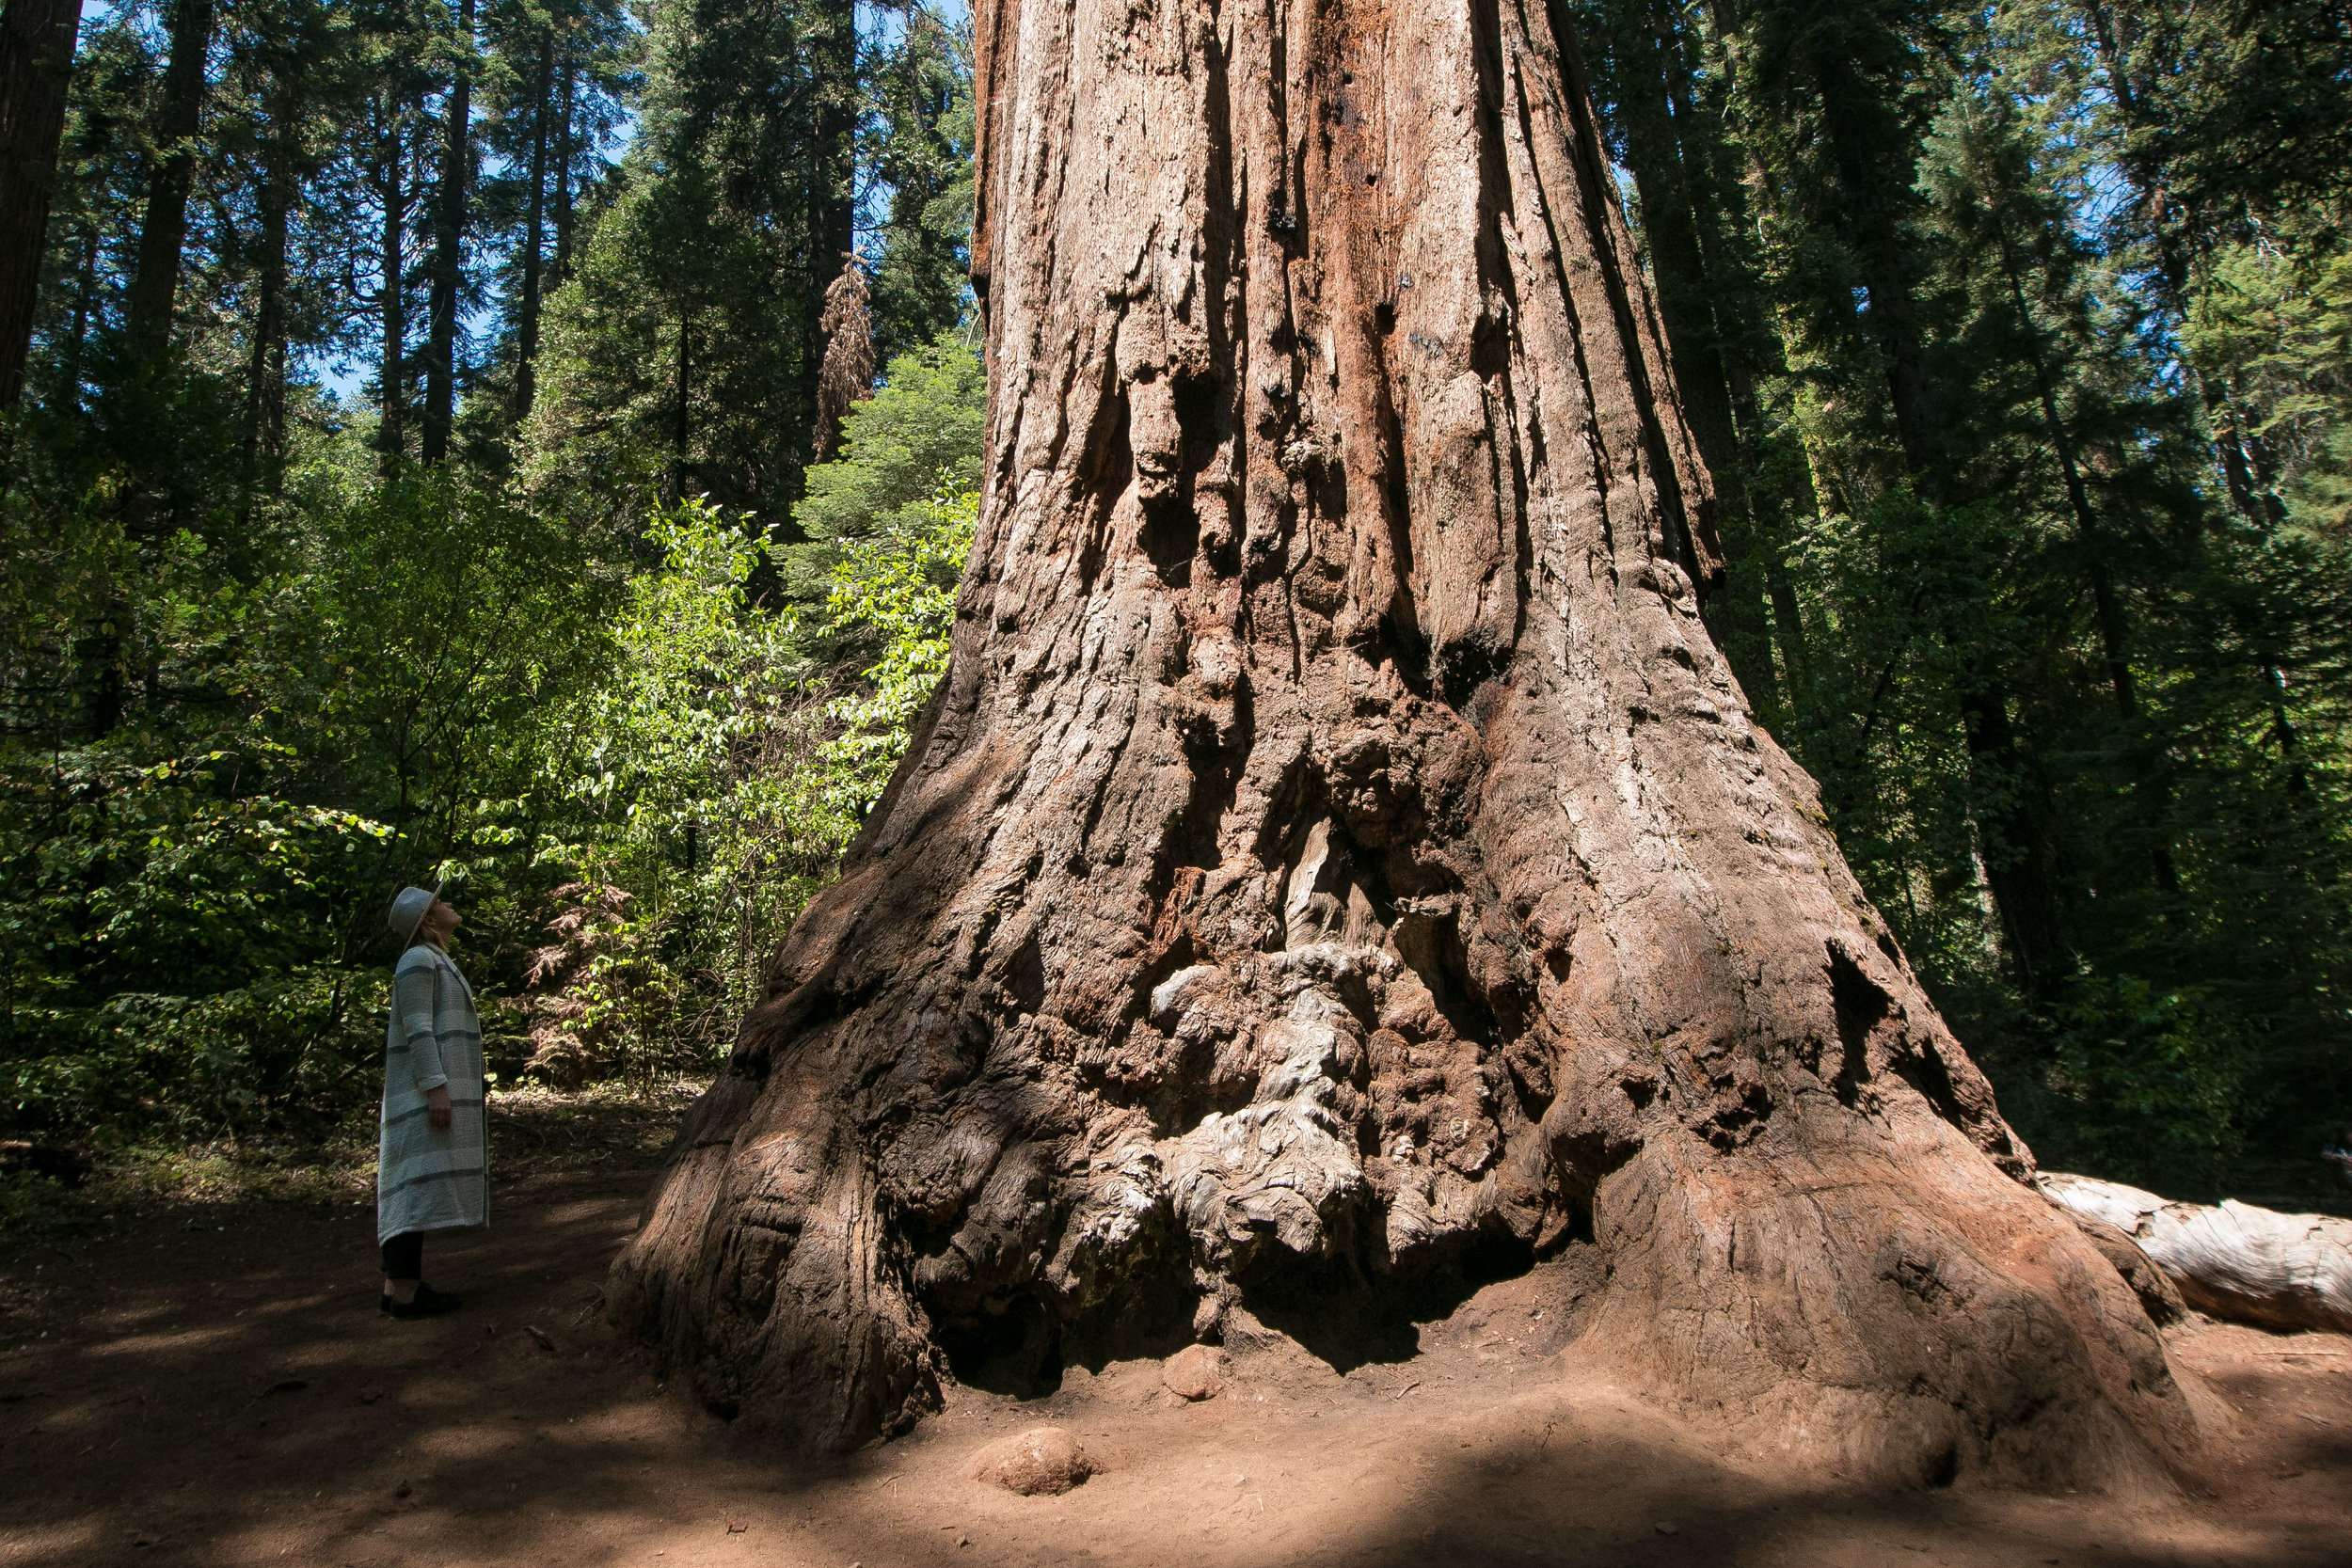 Nelder Grove of Giant Sequoias Mister Weekender Jaharn Giles